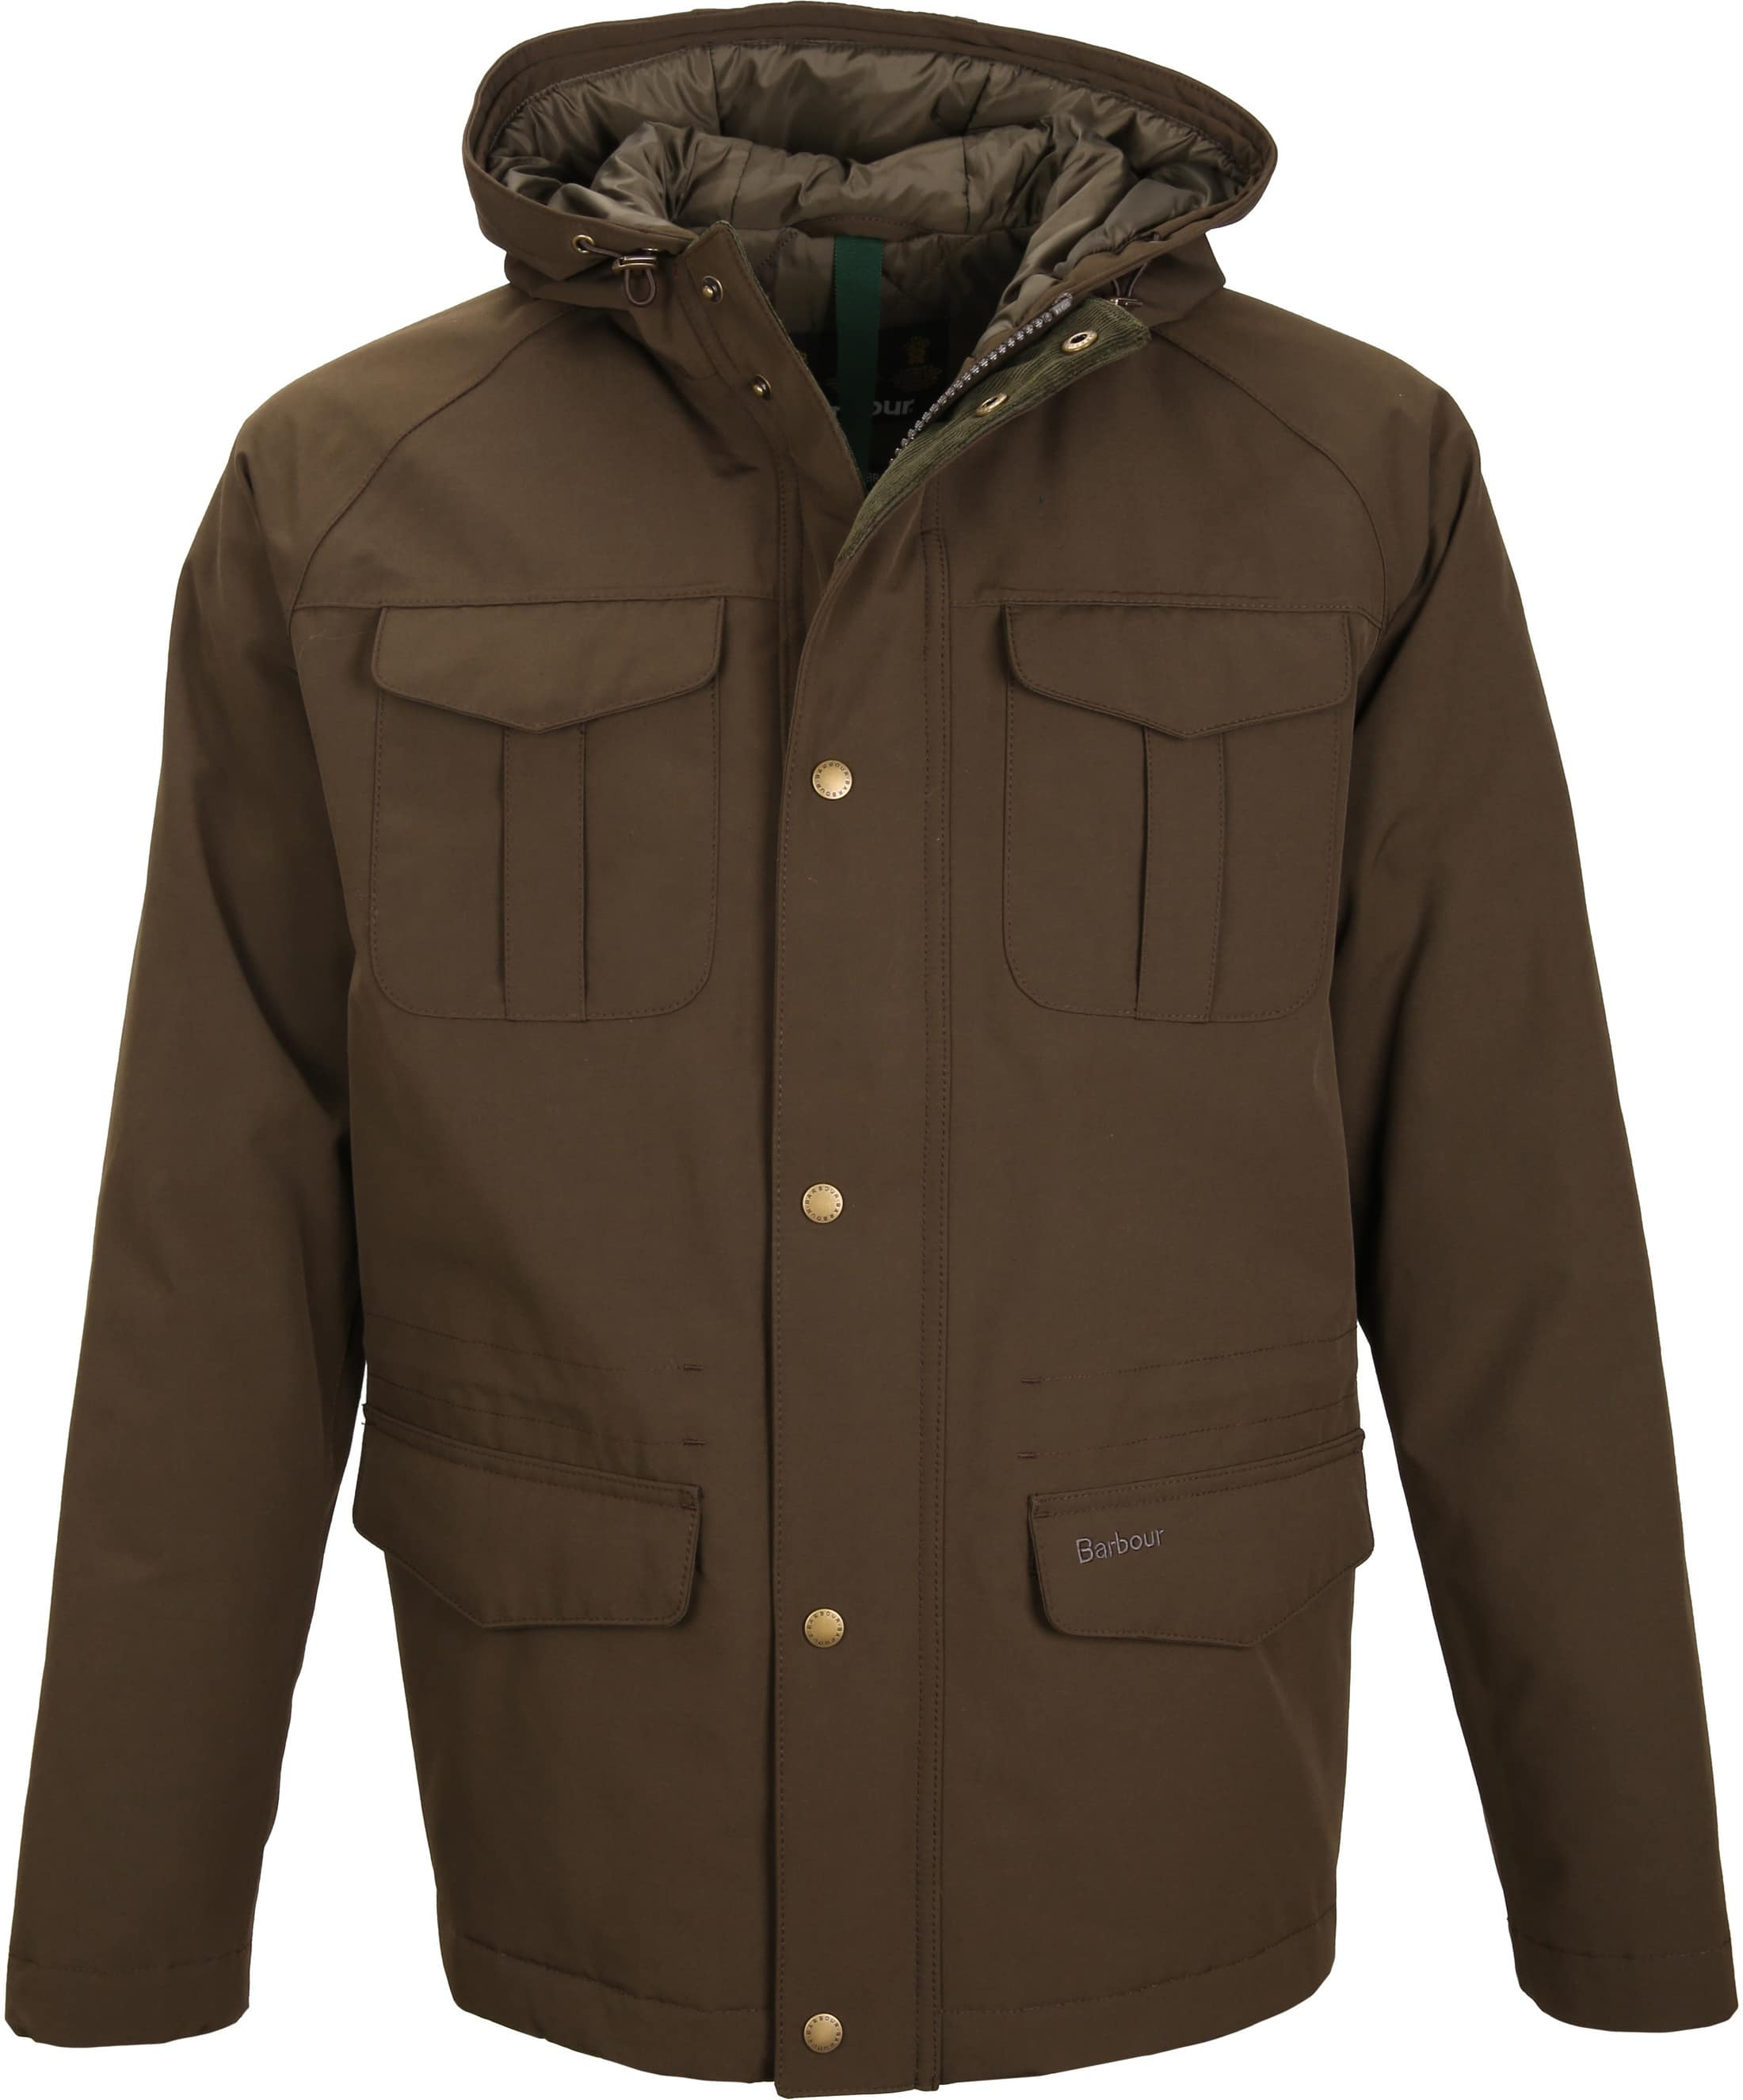 Barbour Whitstable Jacke Oliv foto 0